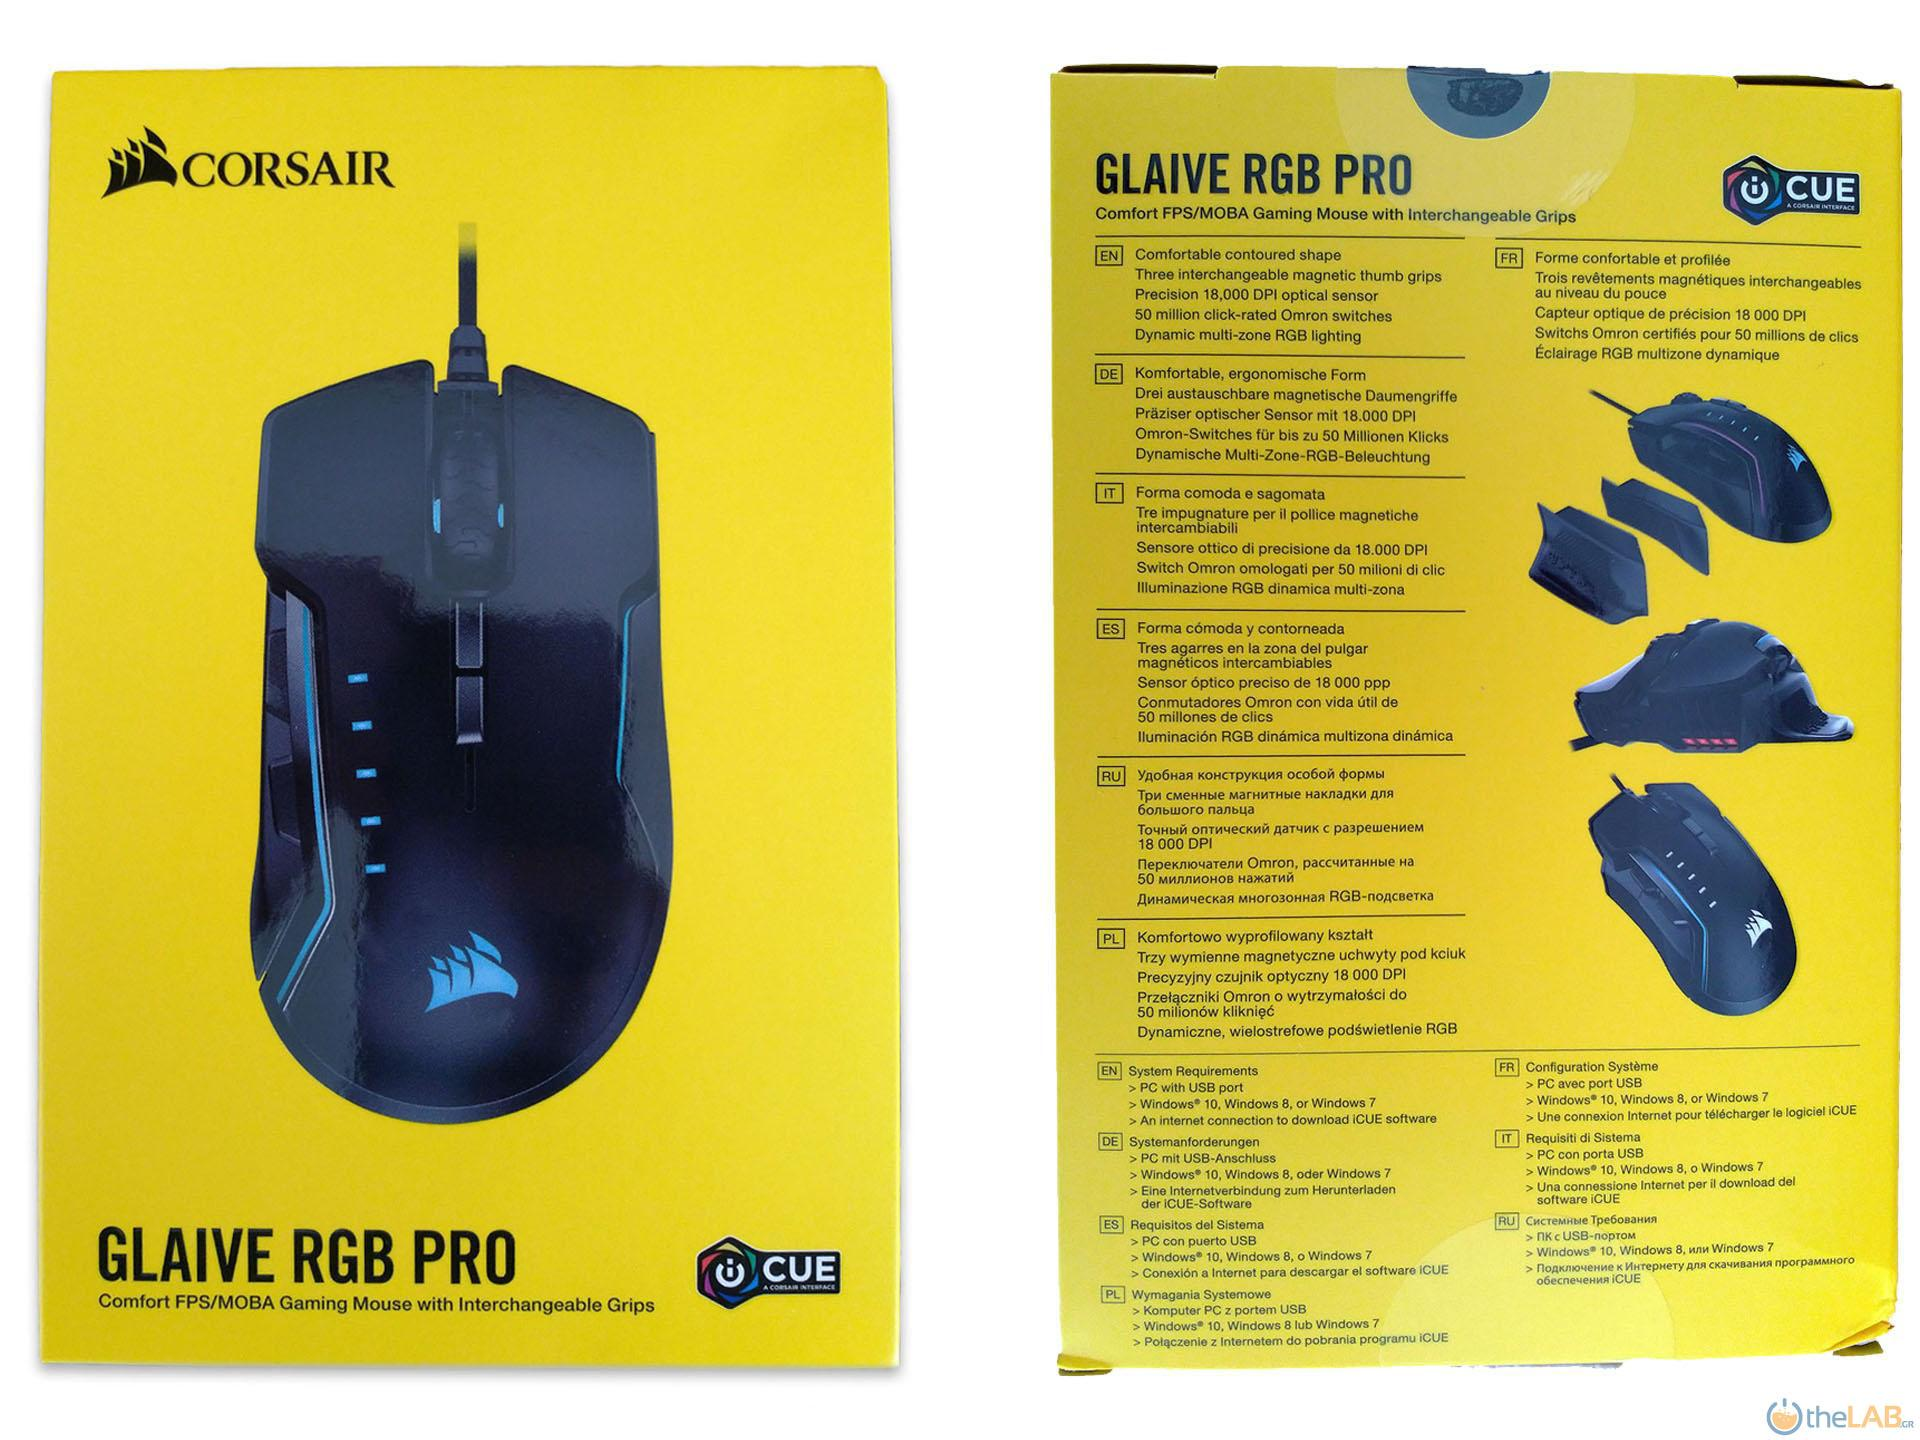 corsair-glaive-rgb-pro-gaming-mouse-review-box-5.jpg